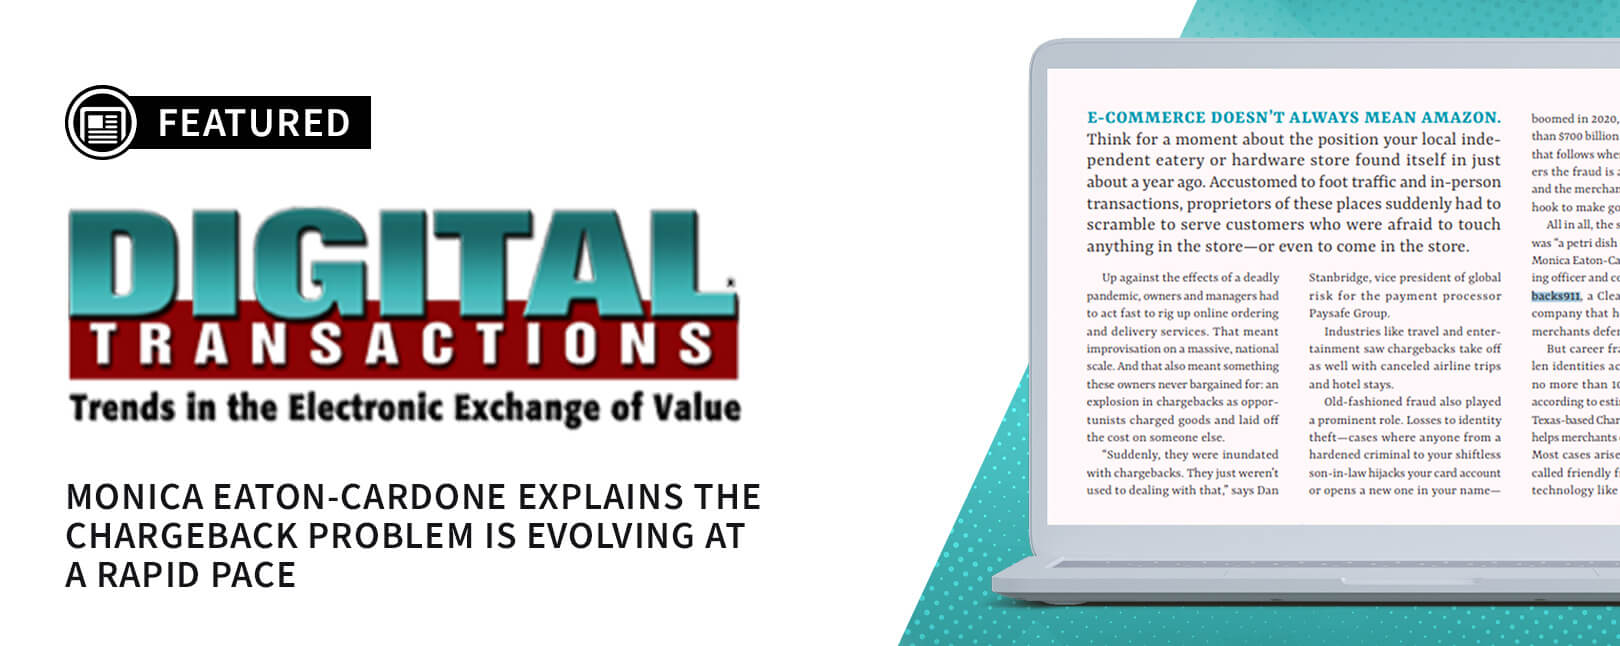 Chargebacks911® COO Interviewed by Digital Transactions